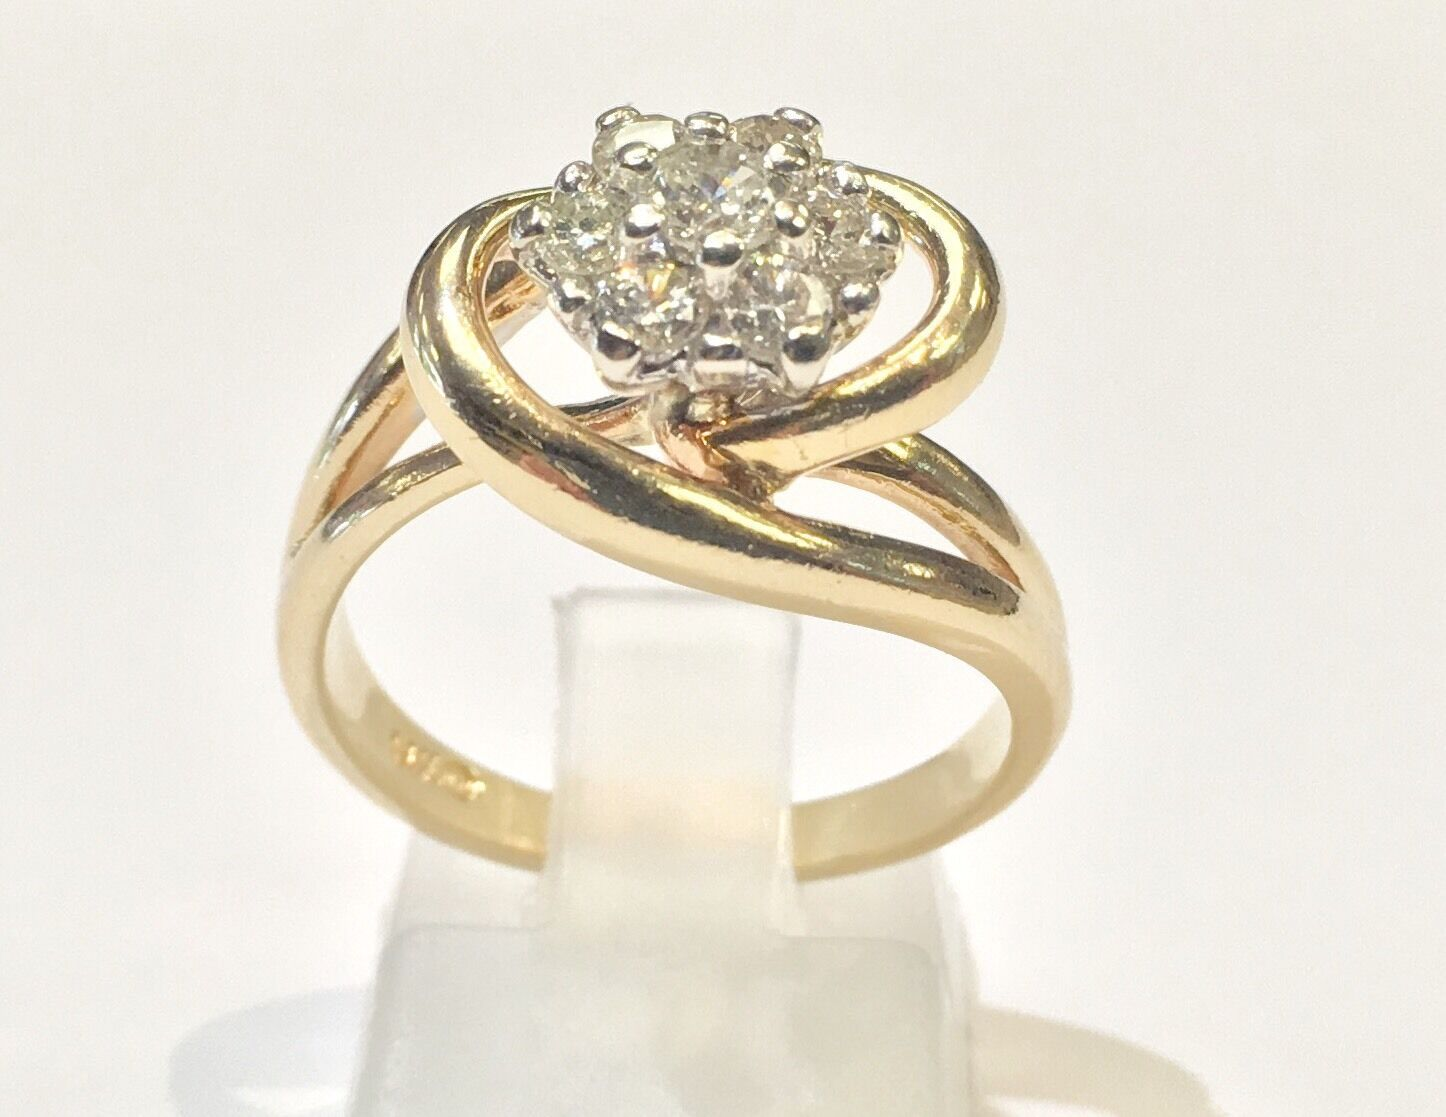 14k Solid Yellow gold Seven Diamond Woman's Ring. 1 2 TCW. Size 6.5